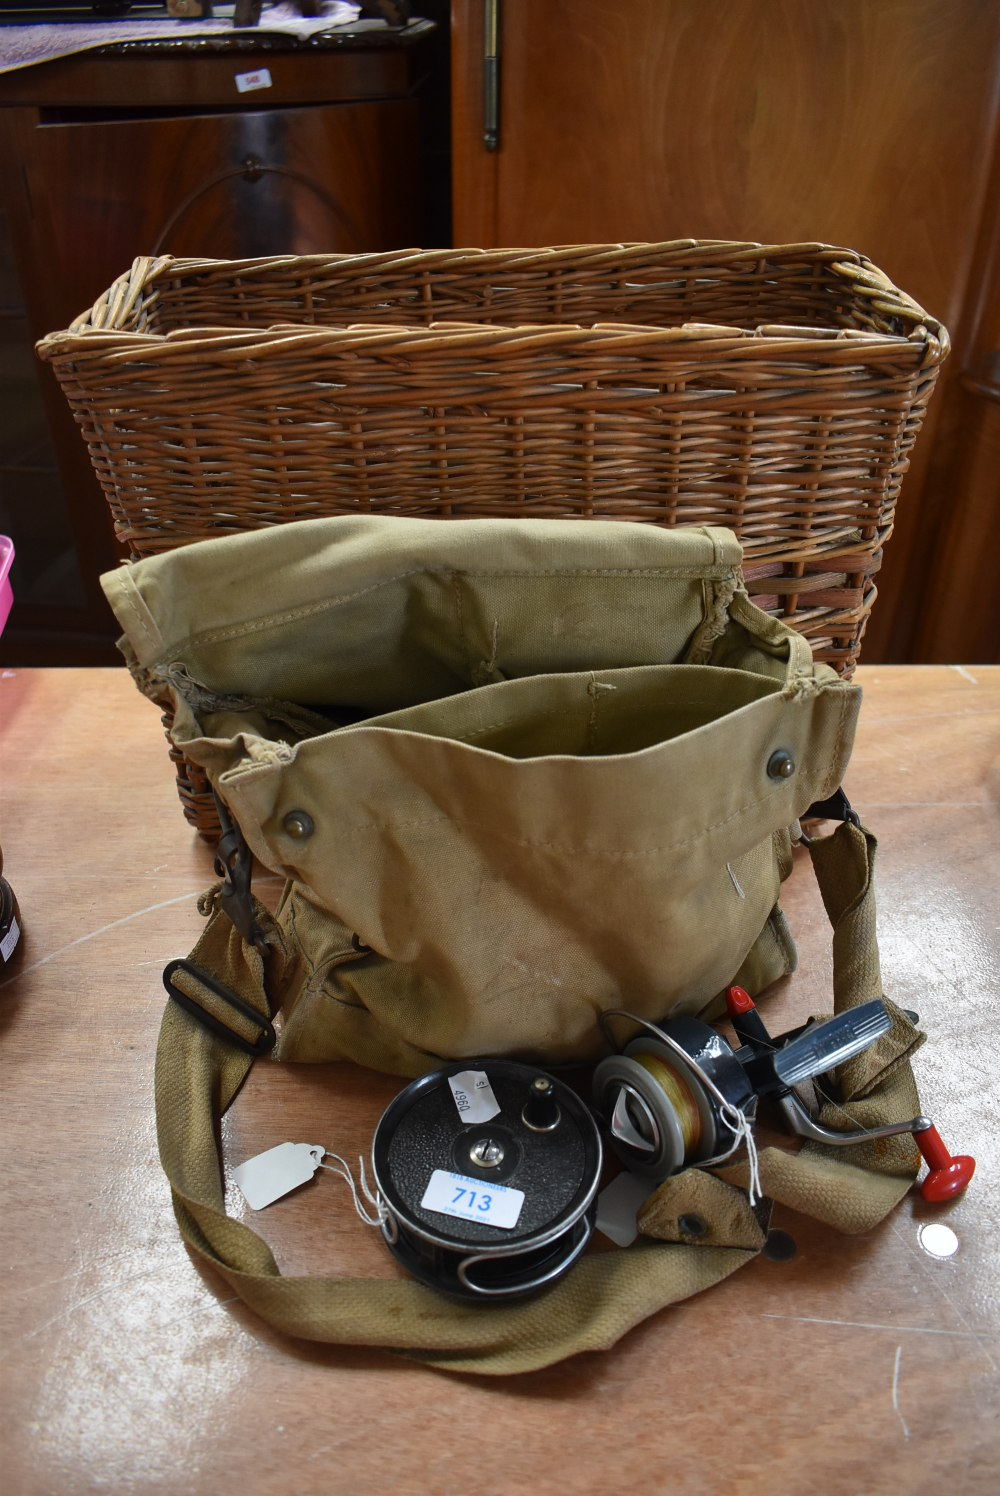 A wicker basket containing canvas bag with tackle and two reels.